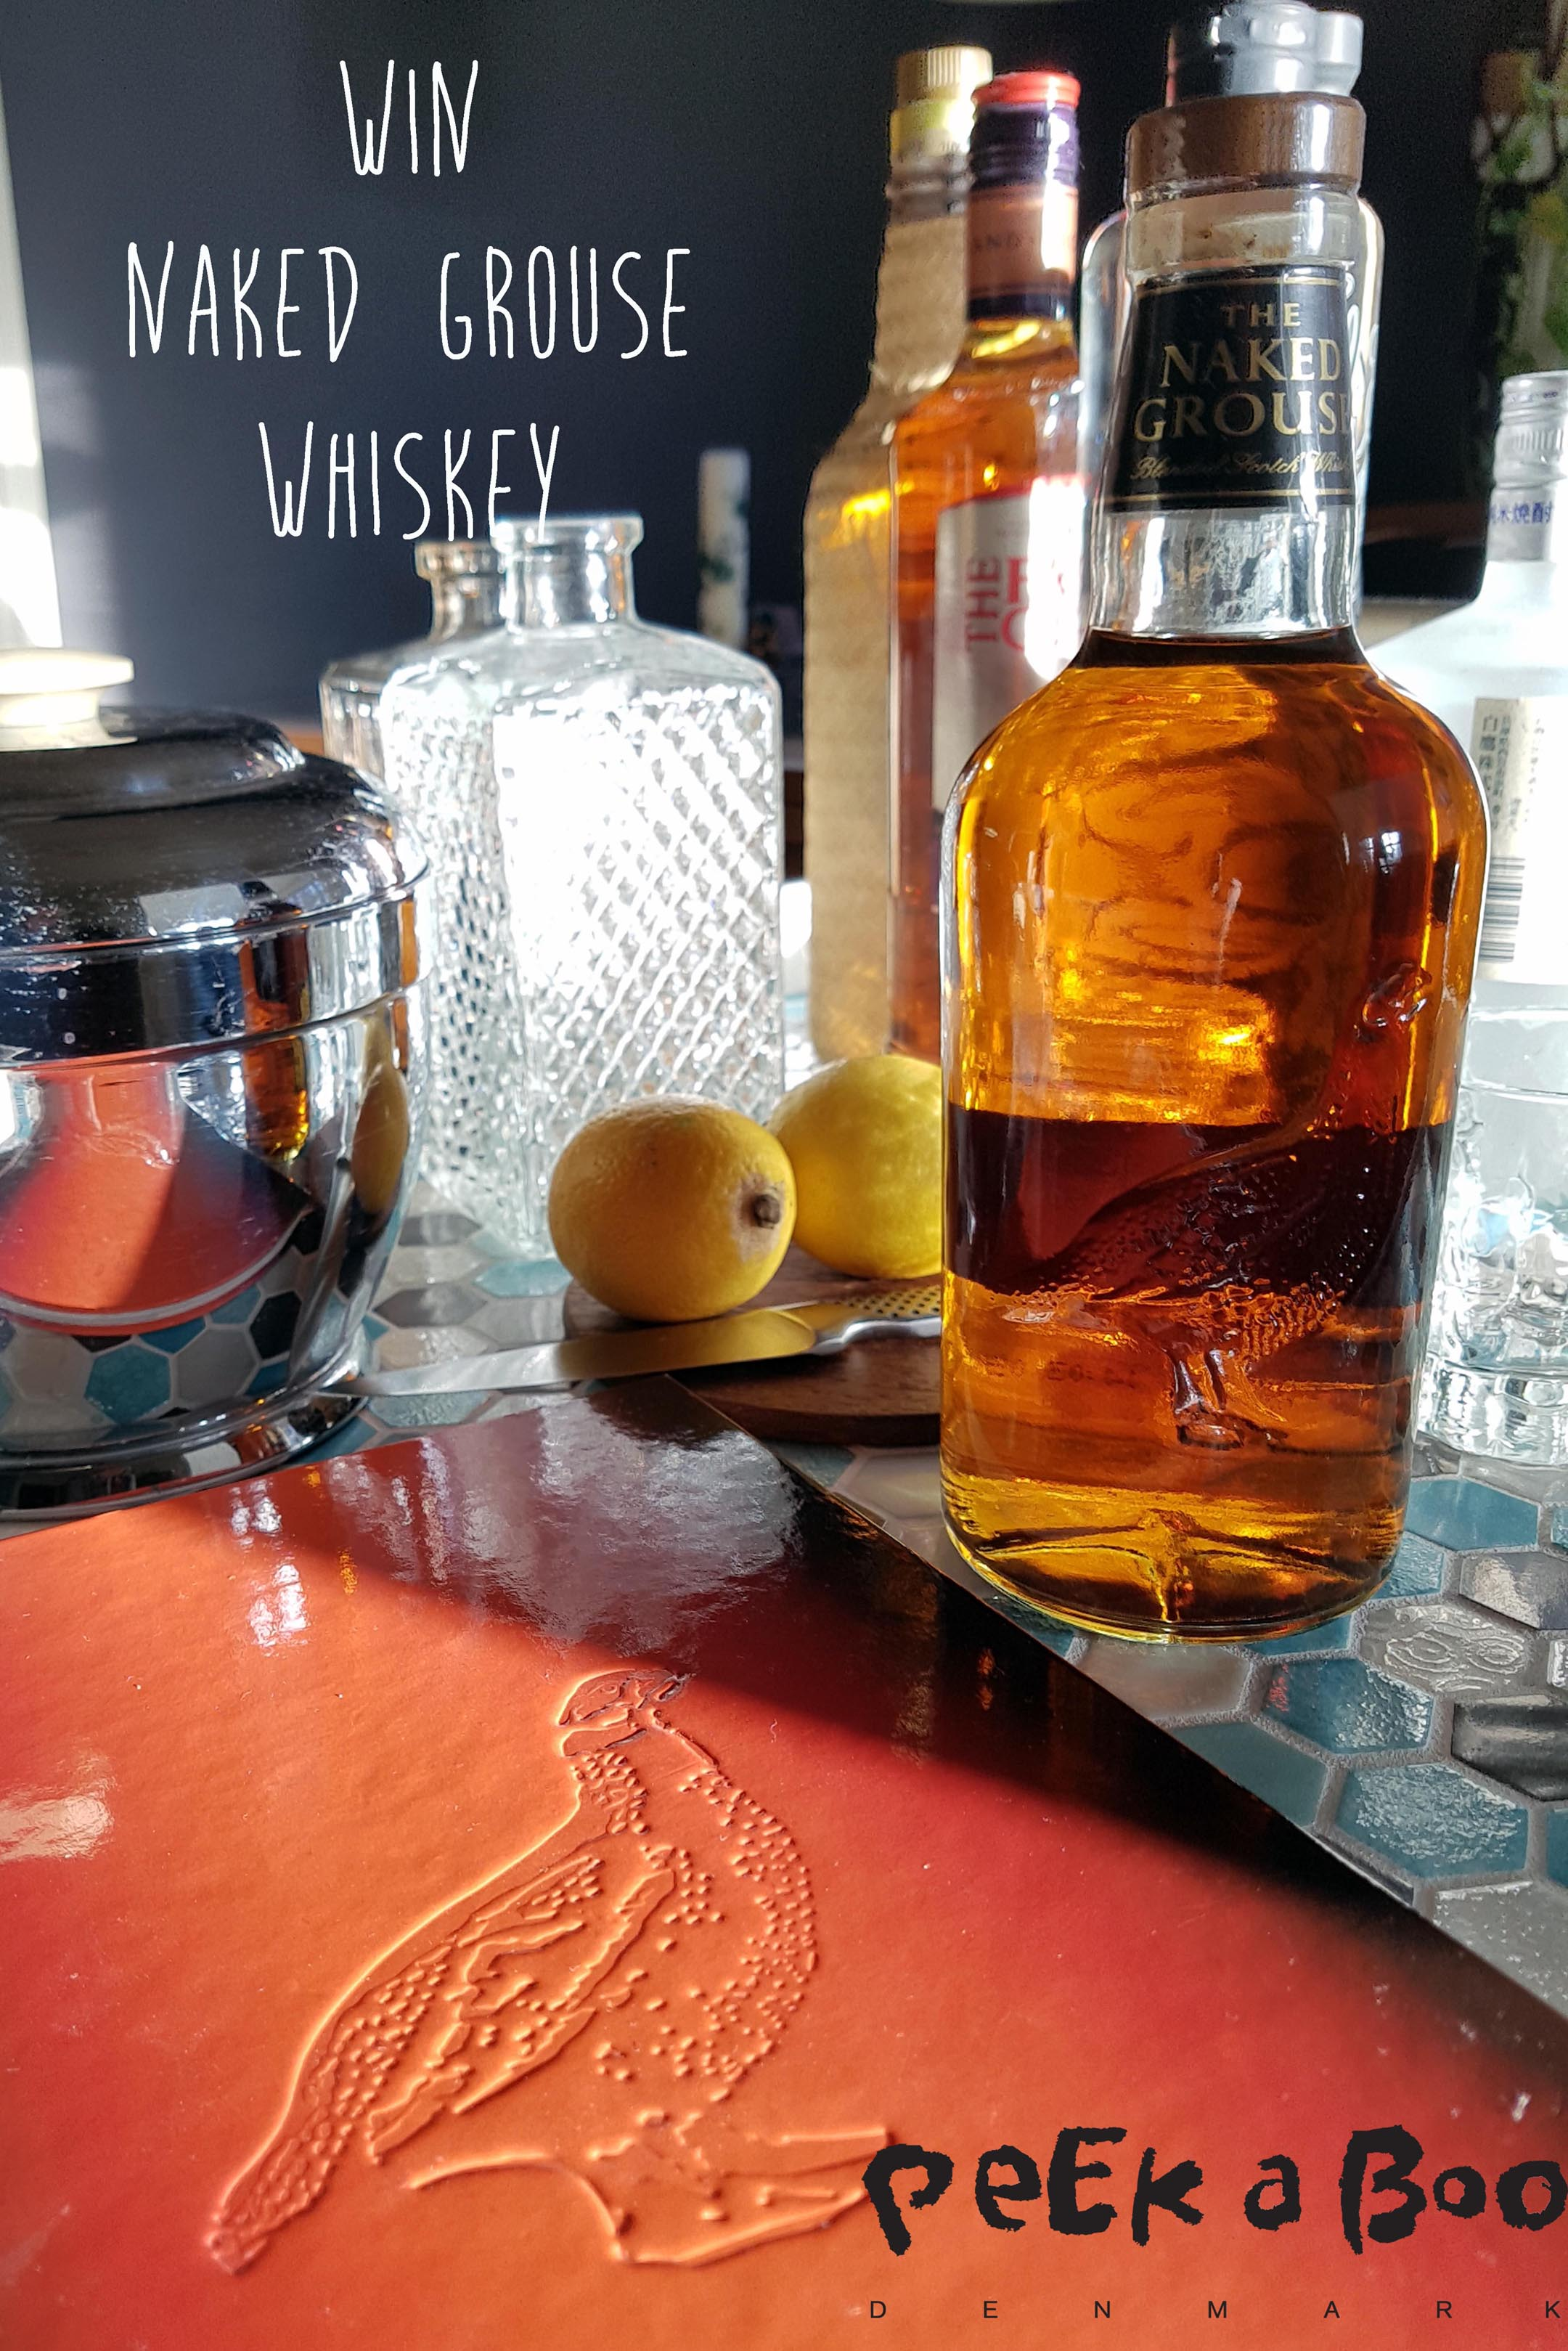 Win The Naked Grouse whiskey og drinksbogen fra The Naked Grouse.